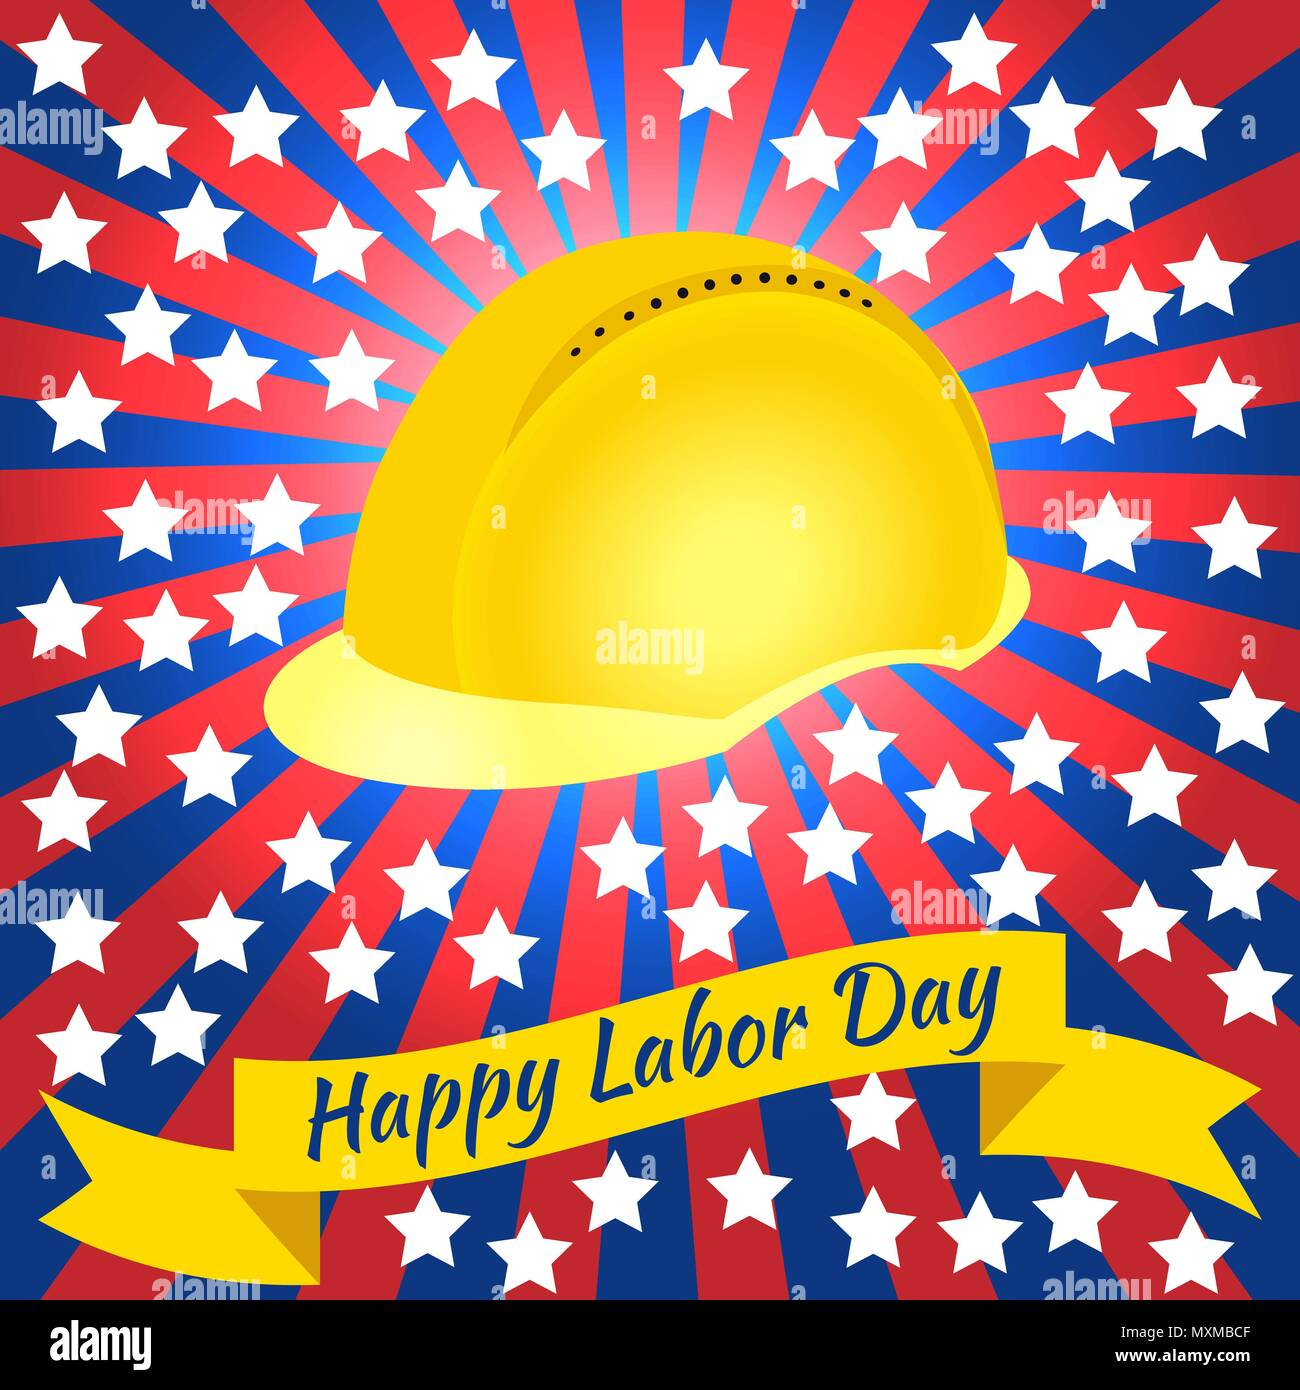 Labor Day In The United States Concept Of A National Holiday 3